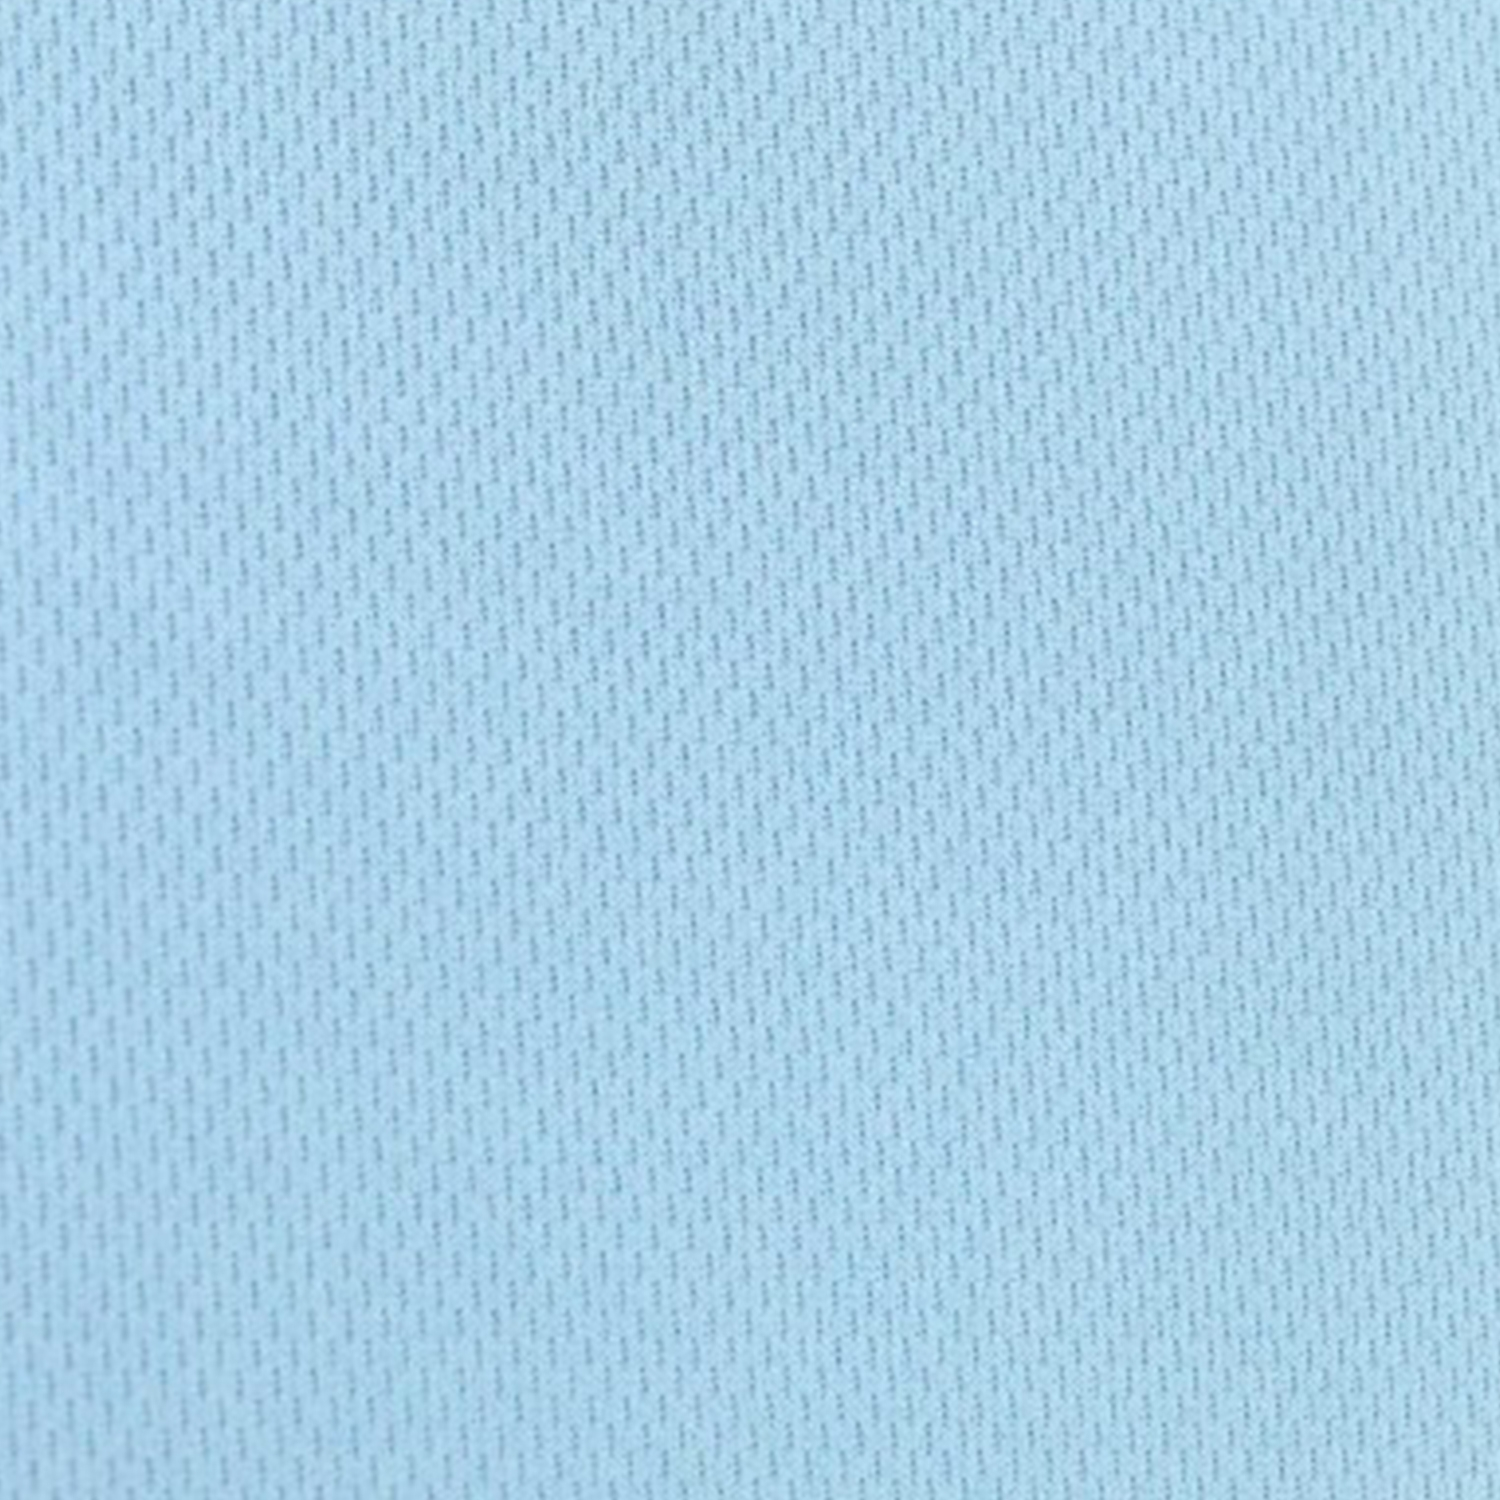 Sky Blue Flat Back Dimple Mesh Fabric